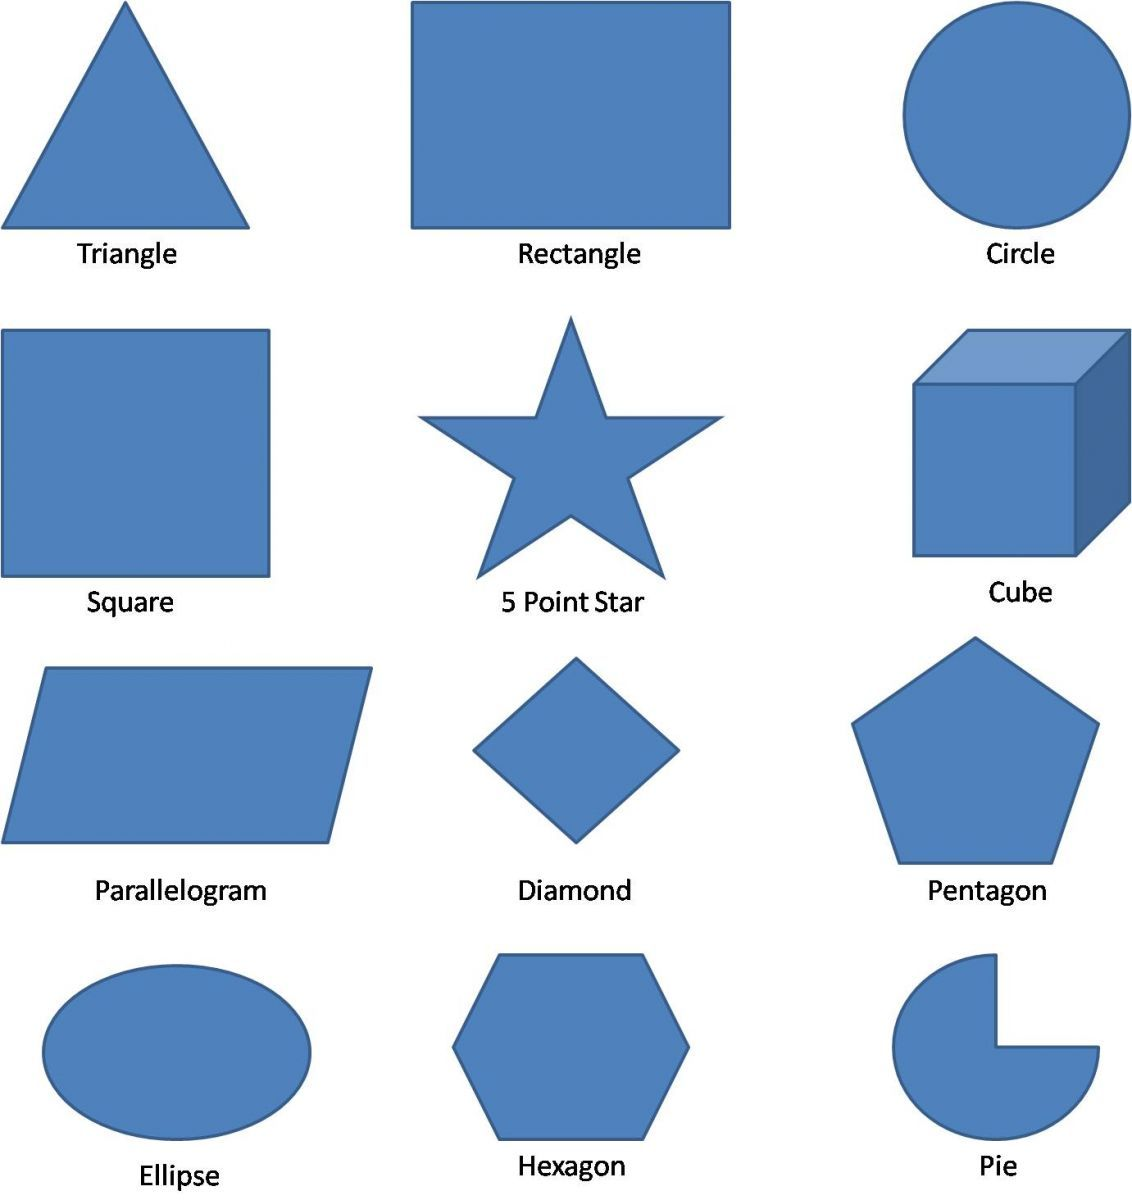 Geometry Worksheets For Grade 3 Kids For Math Olympiad Prepartions Learn The Basic Shapes Like Sq Geometry Worksheets Geometric Shapes Names Shapes Worksheets